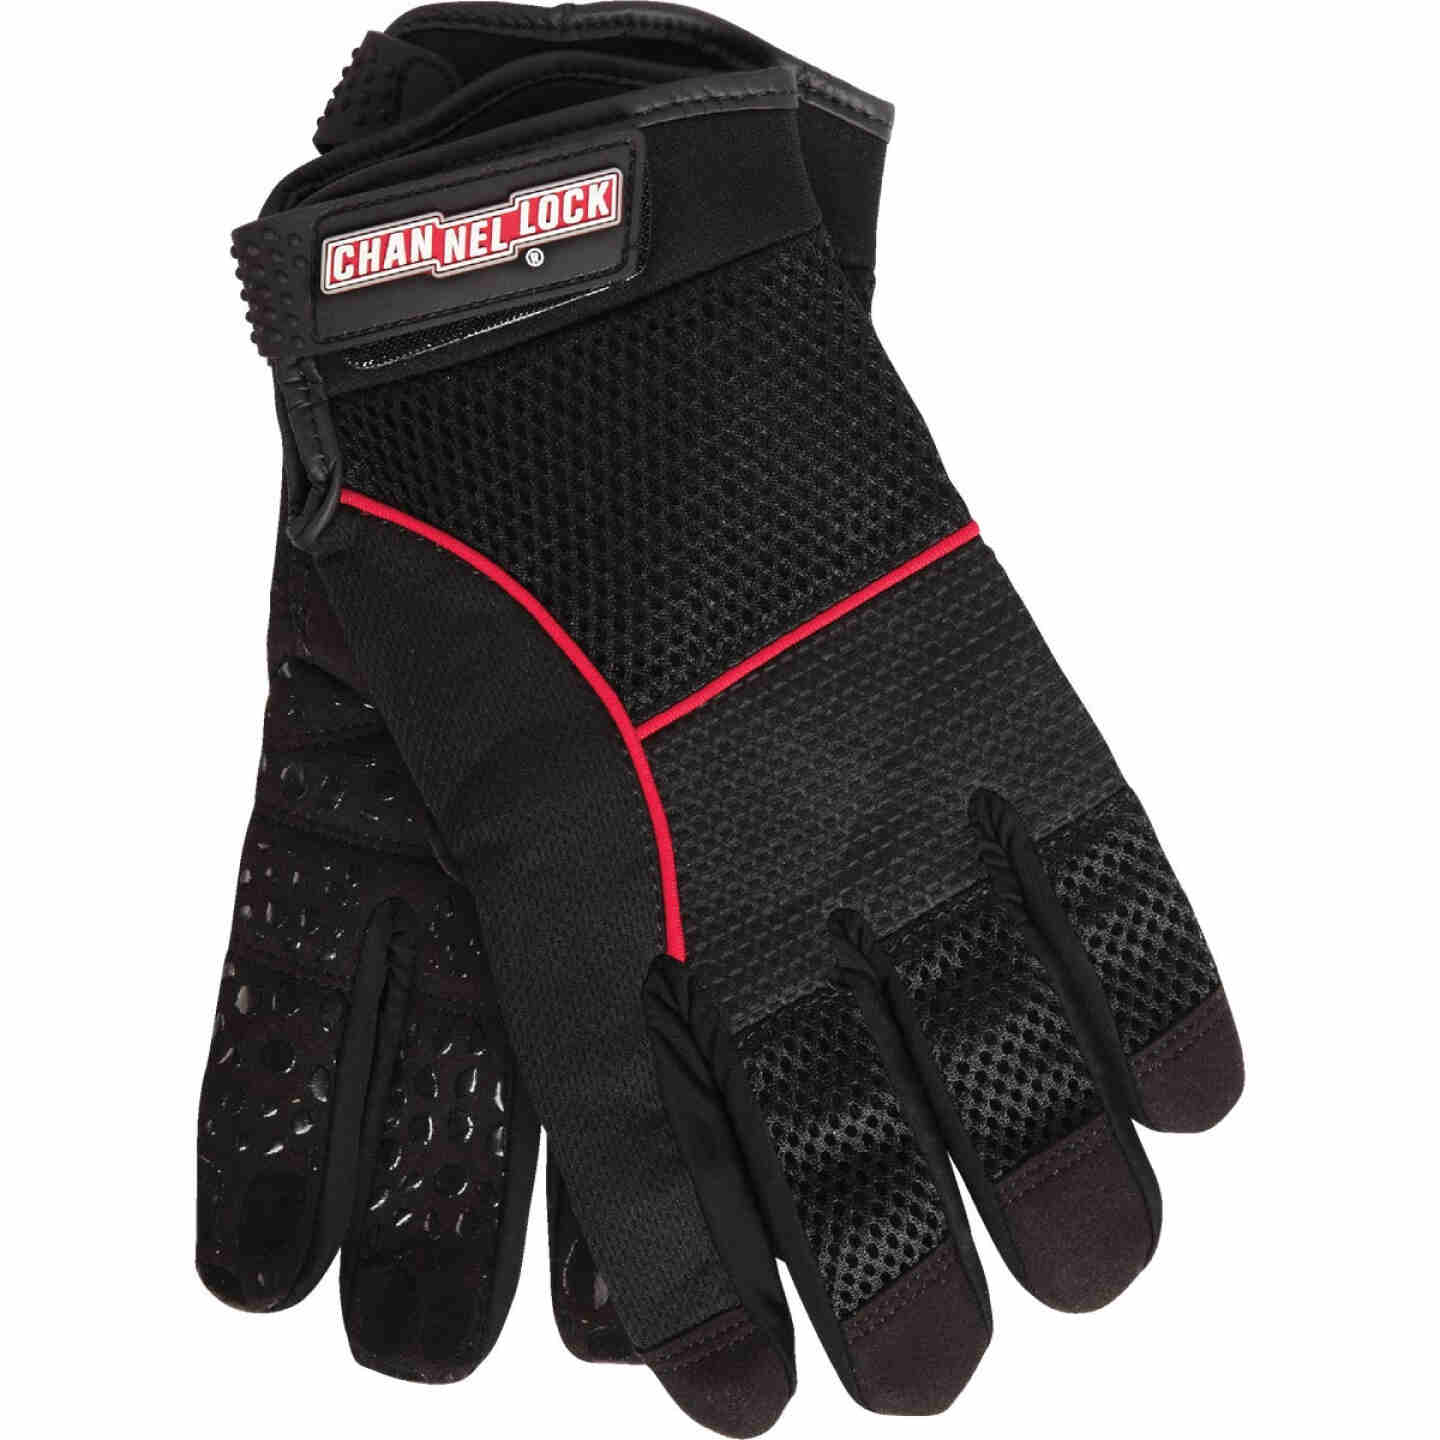 Channellock Men's Medium Synthetic Leather Utility Grip High Performance Glove Image 1